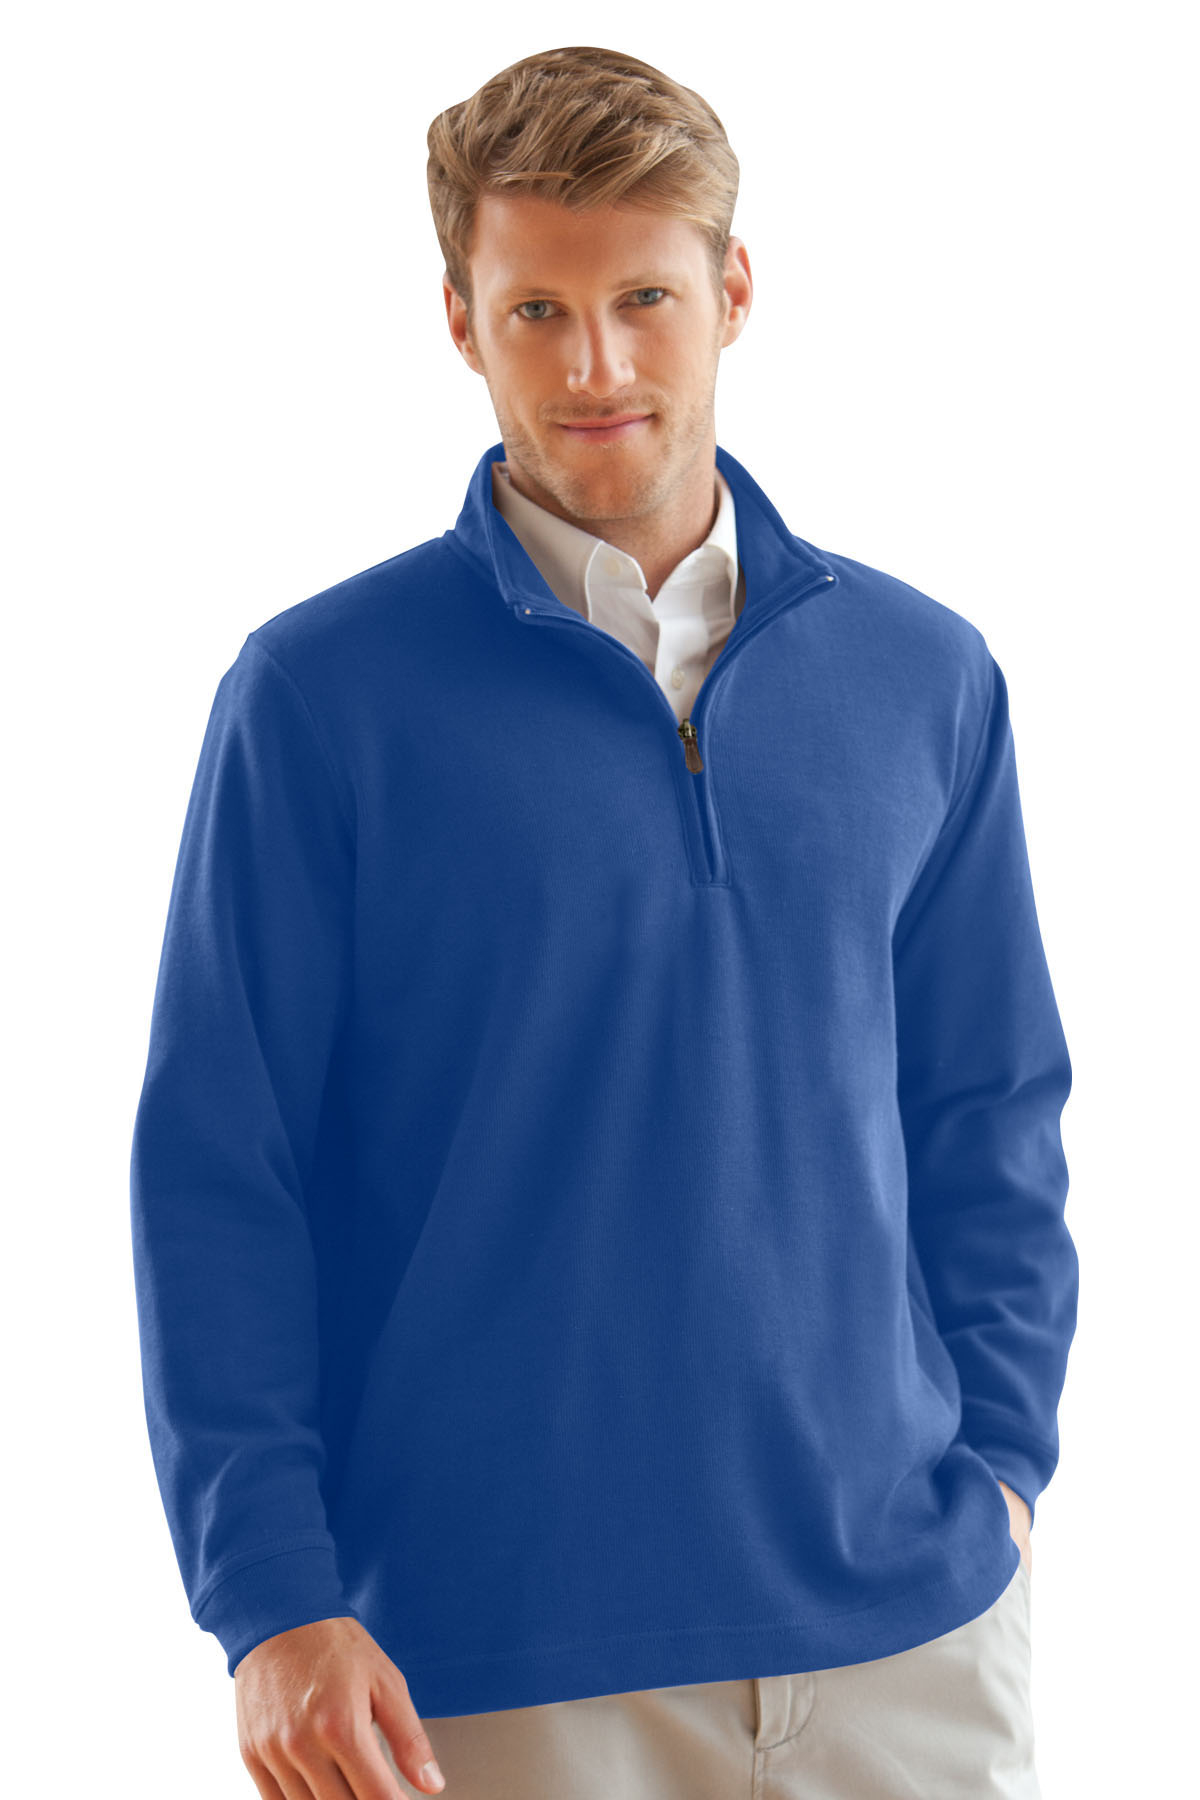 Vantage 9175 - One Quarter Zip Flat-Back Rib Pullover